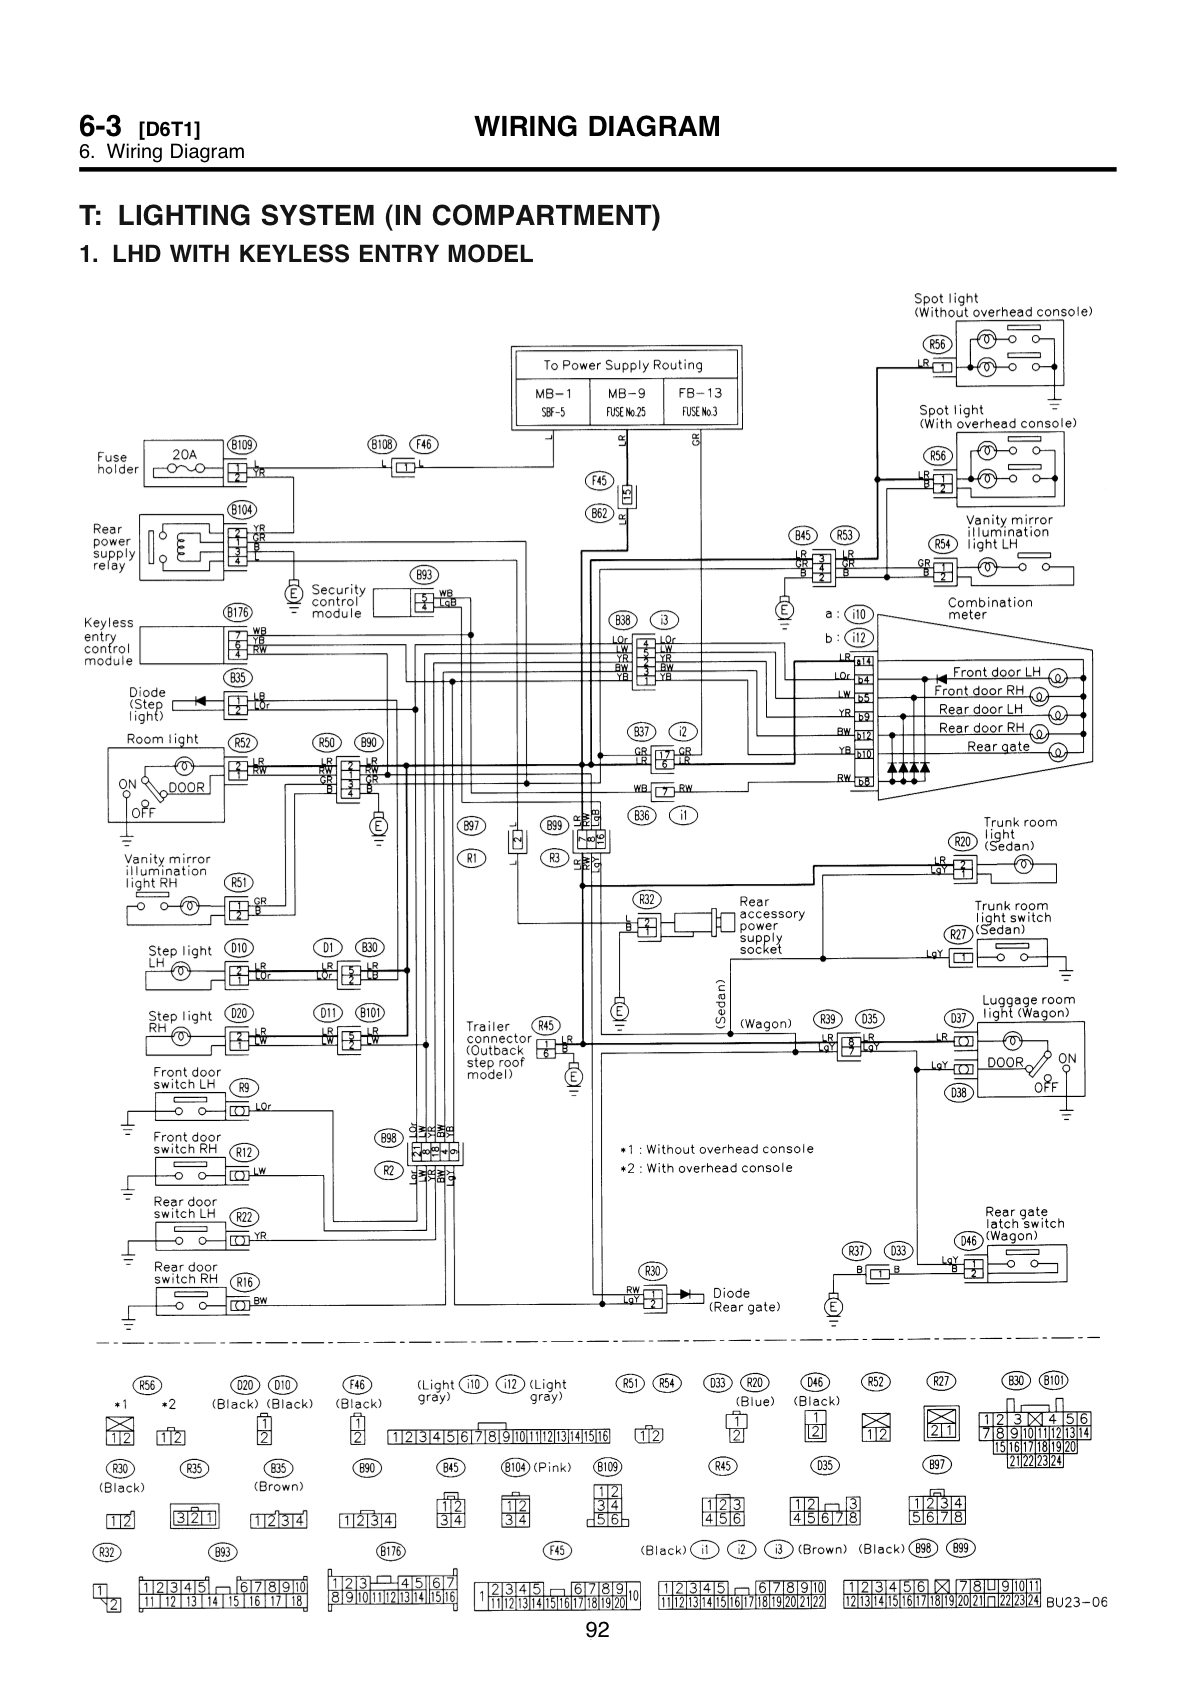 wiring_diagram1?resize\=840%2C1187 diagrams 554363 kramer single humbucker wiring diagram kramer kramer pacer wiring diagram at n-0.co